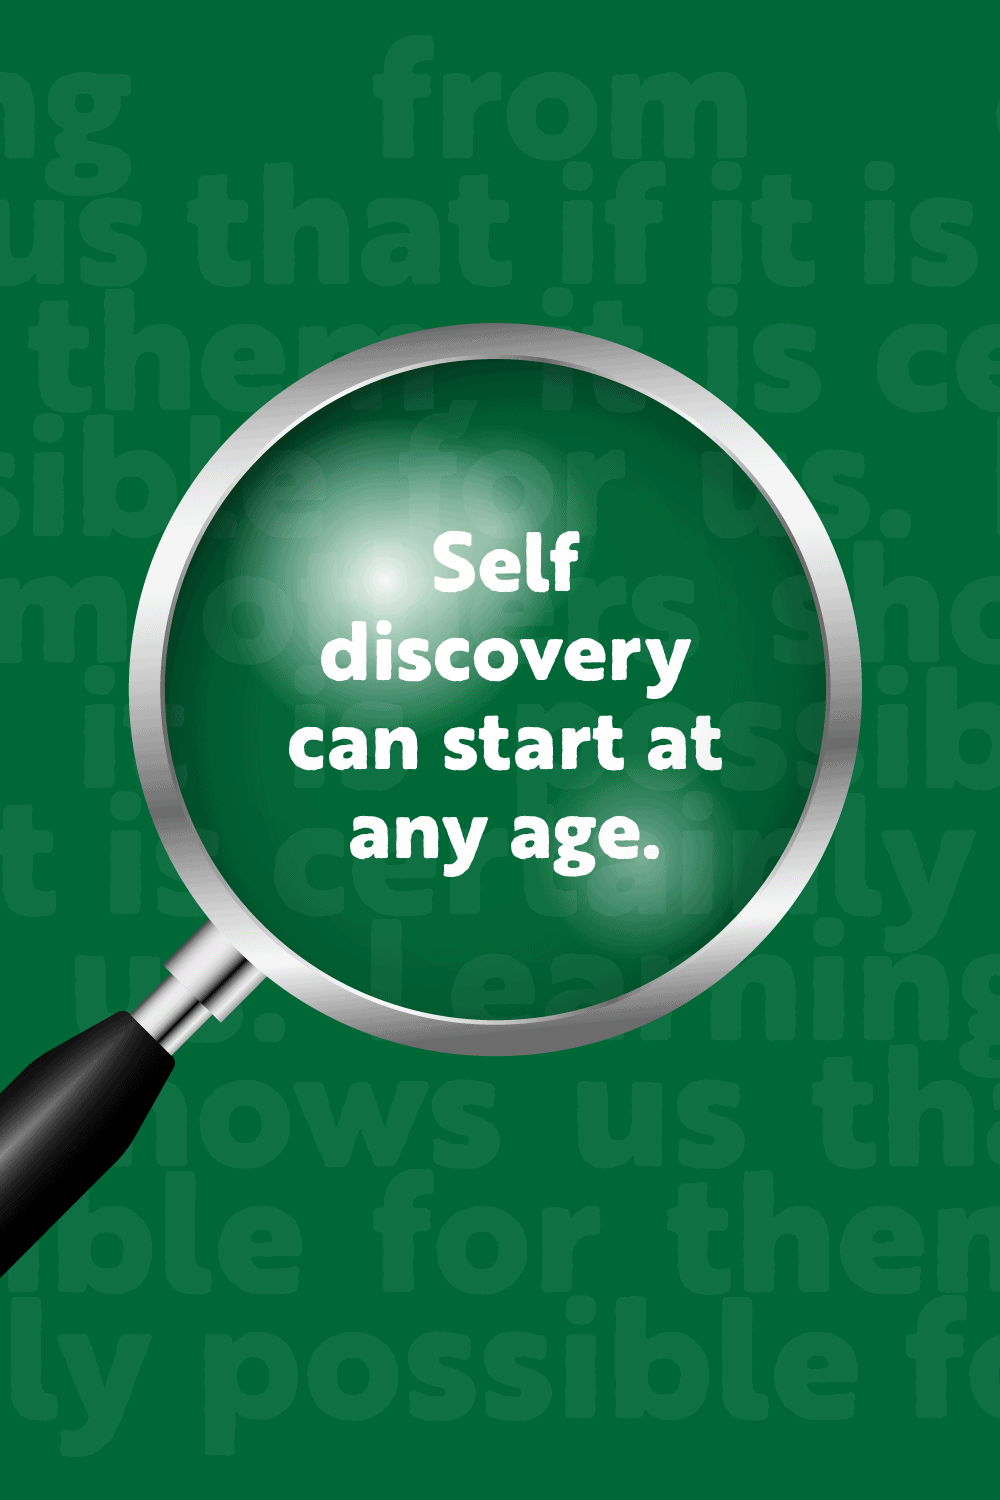 magnifying glass with green background and white text on how self discovery at start at age 30